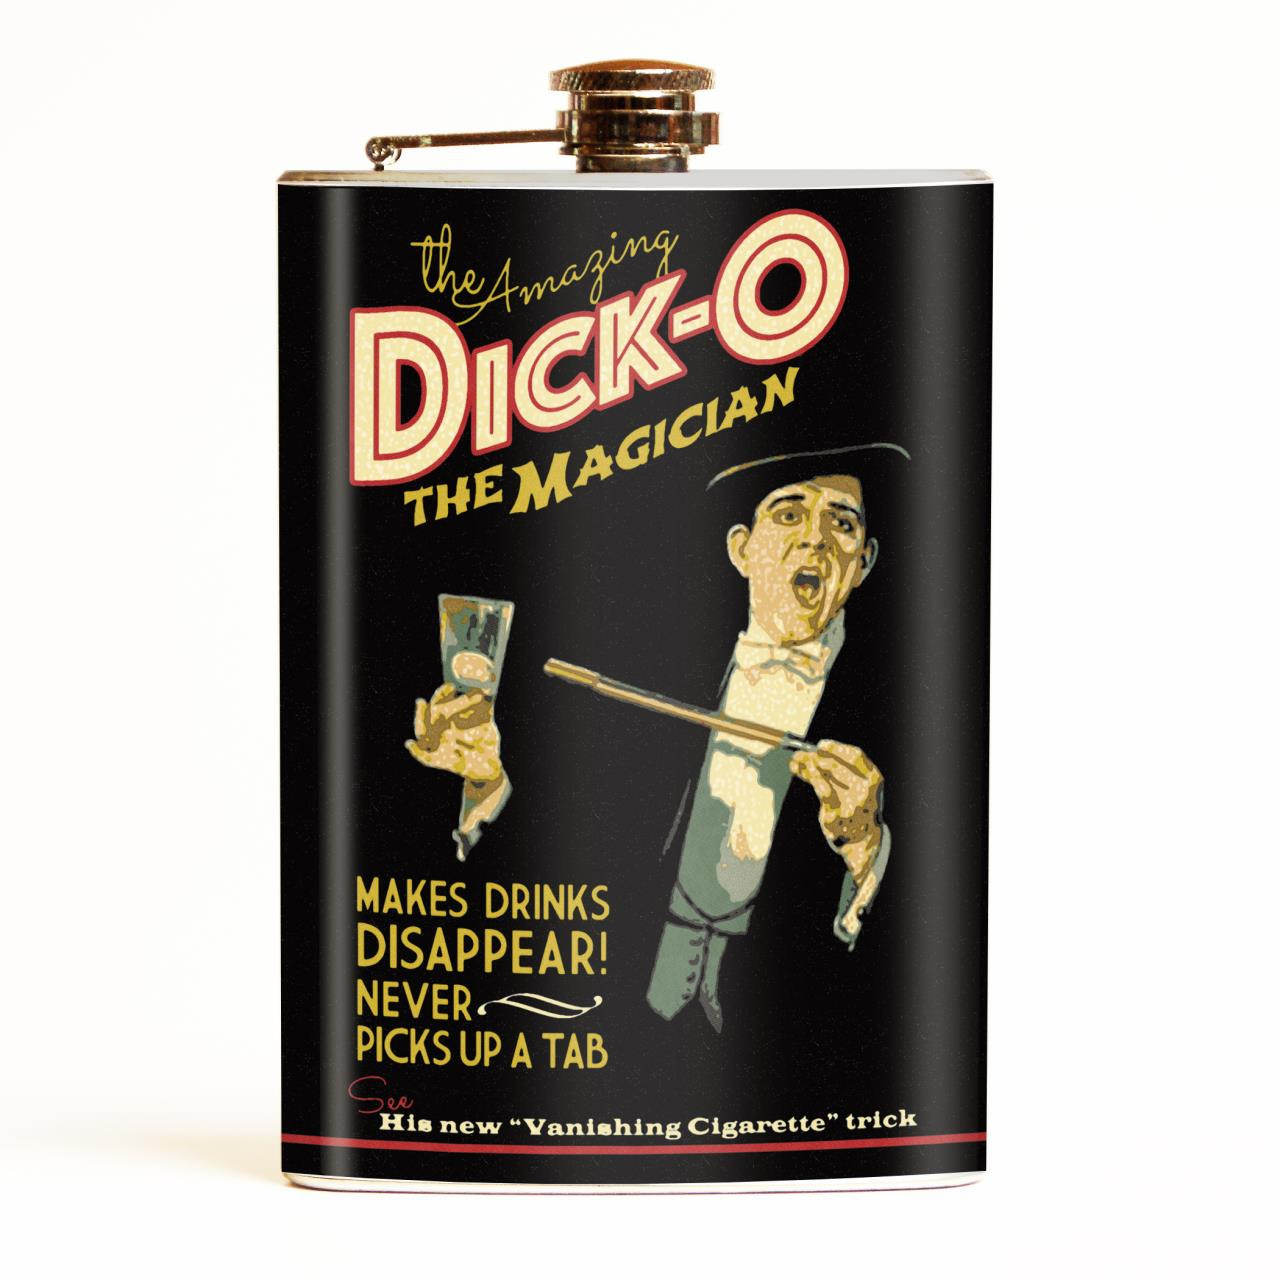 Dick-O The Magician Flask* -